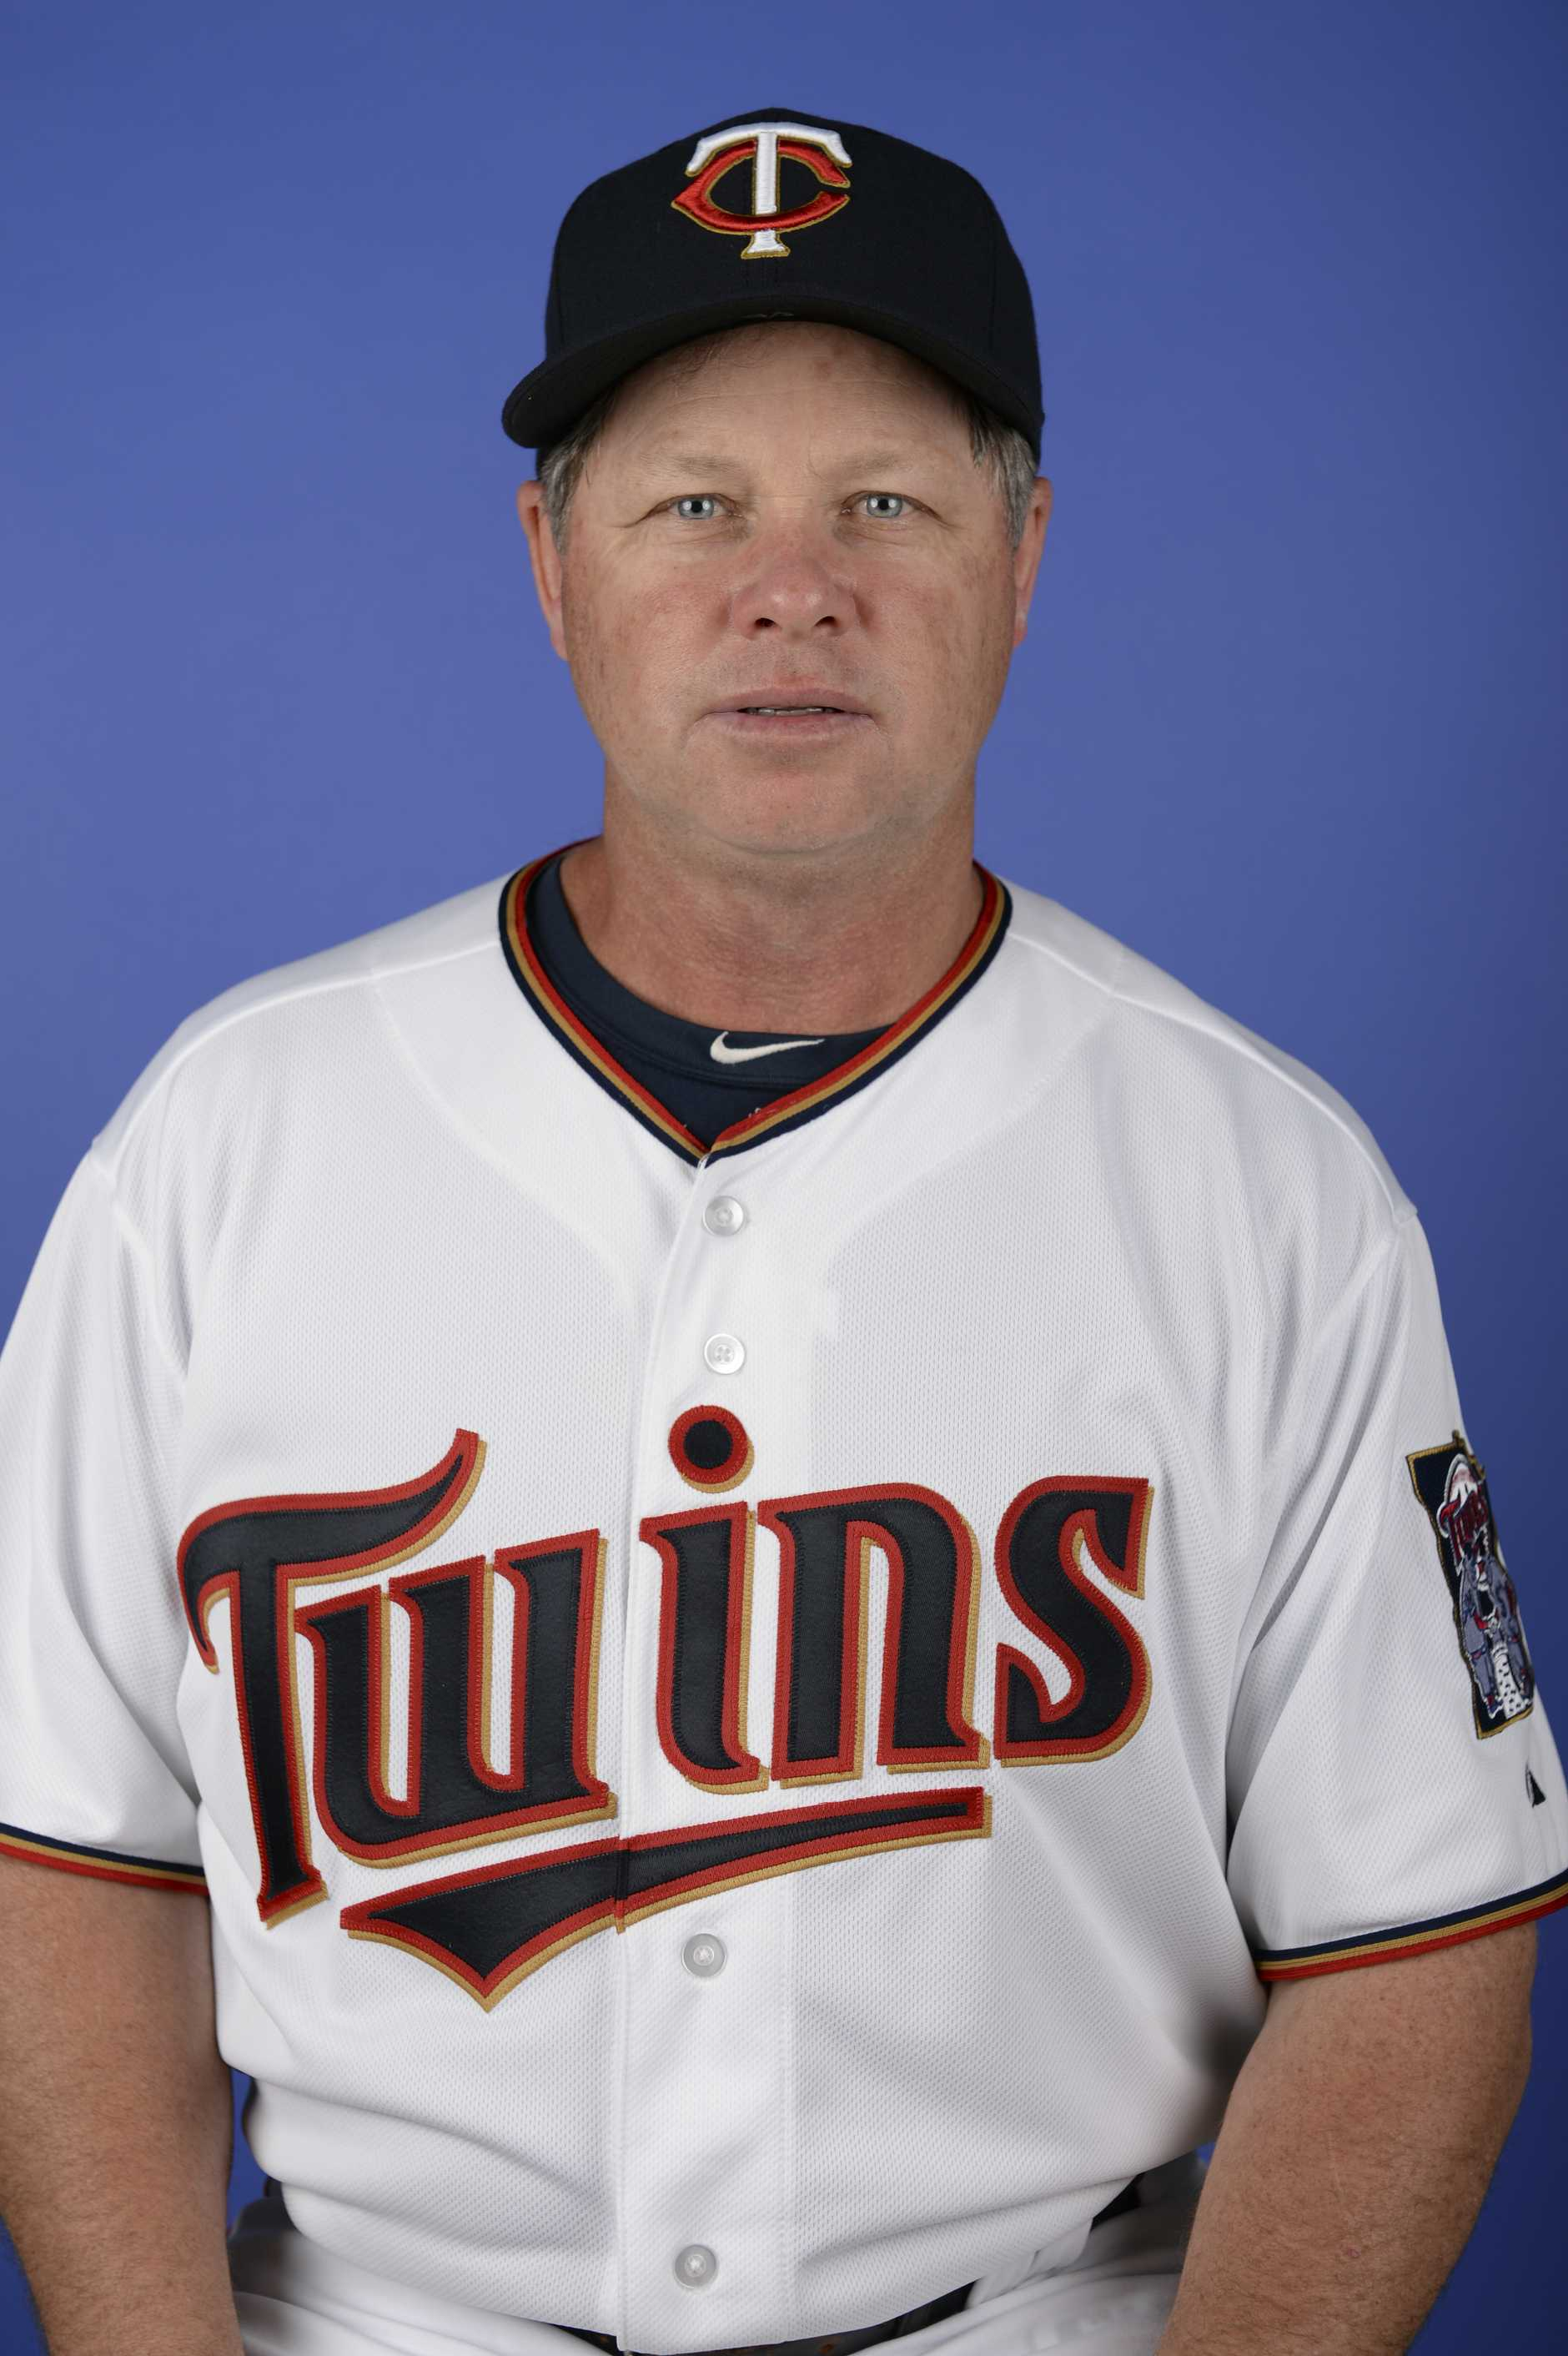 MINNESOTA Twins bench coach Joe Vavra - set to become the first active Major League coach to manage in the new Australian Baseball League - is excited to be heading to the Melbourne Aces. Photo: Courtesy of the Minnesota Twins.